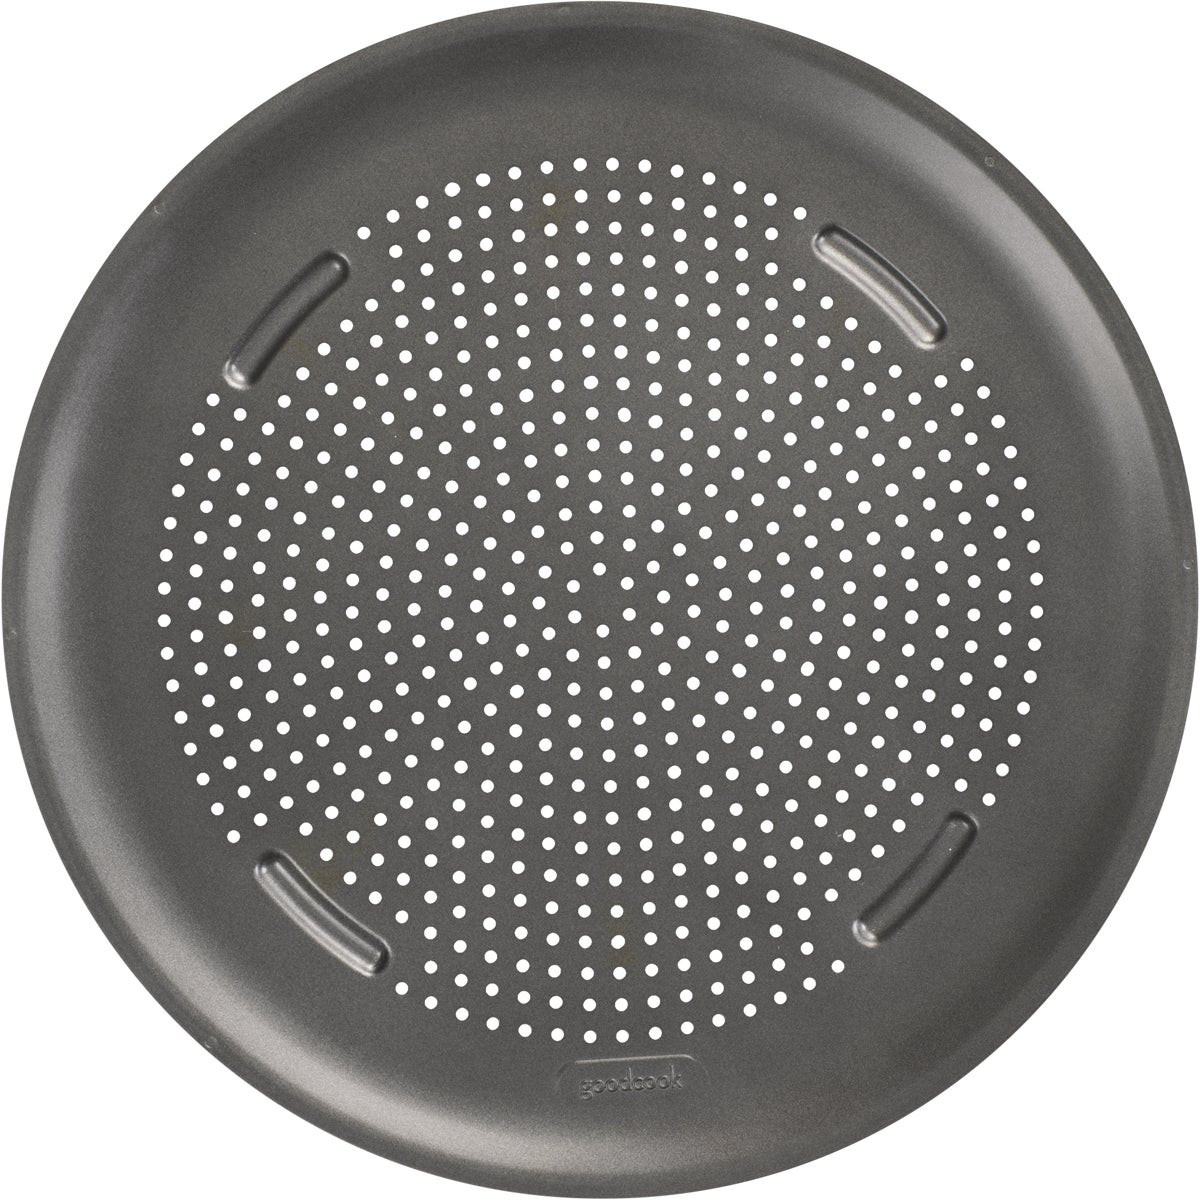 AB NS LG PIZZA PAN - J0811064 by T Fal Wearever